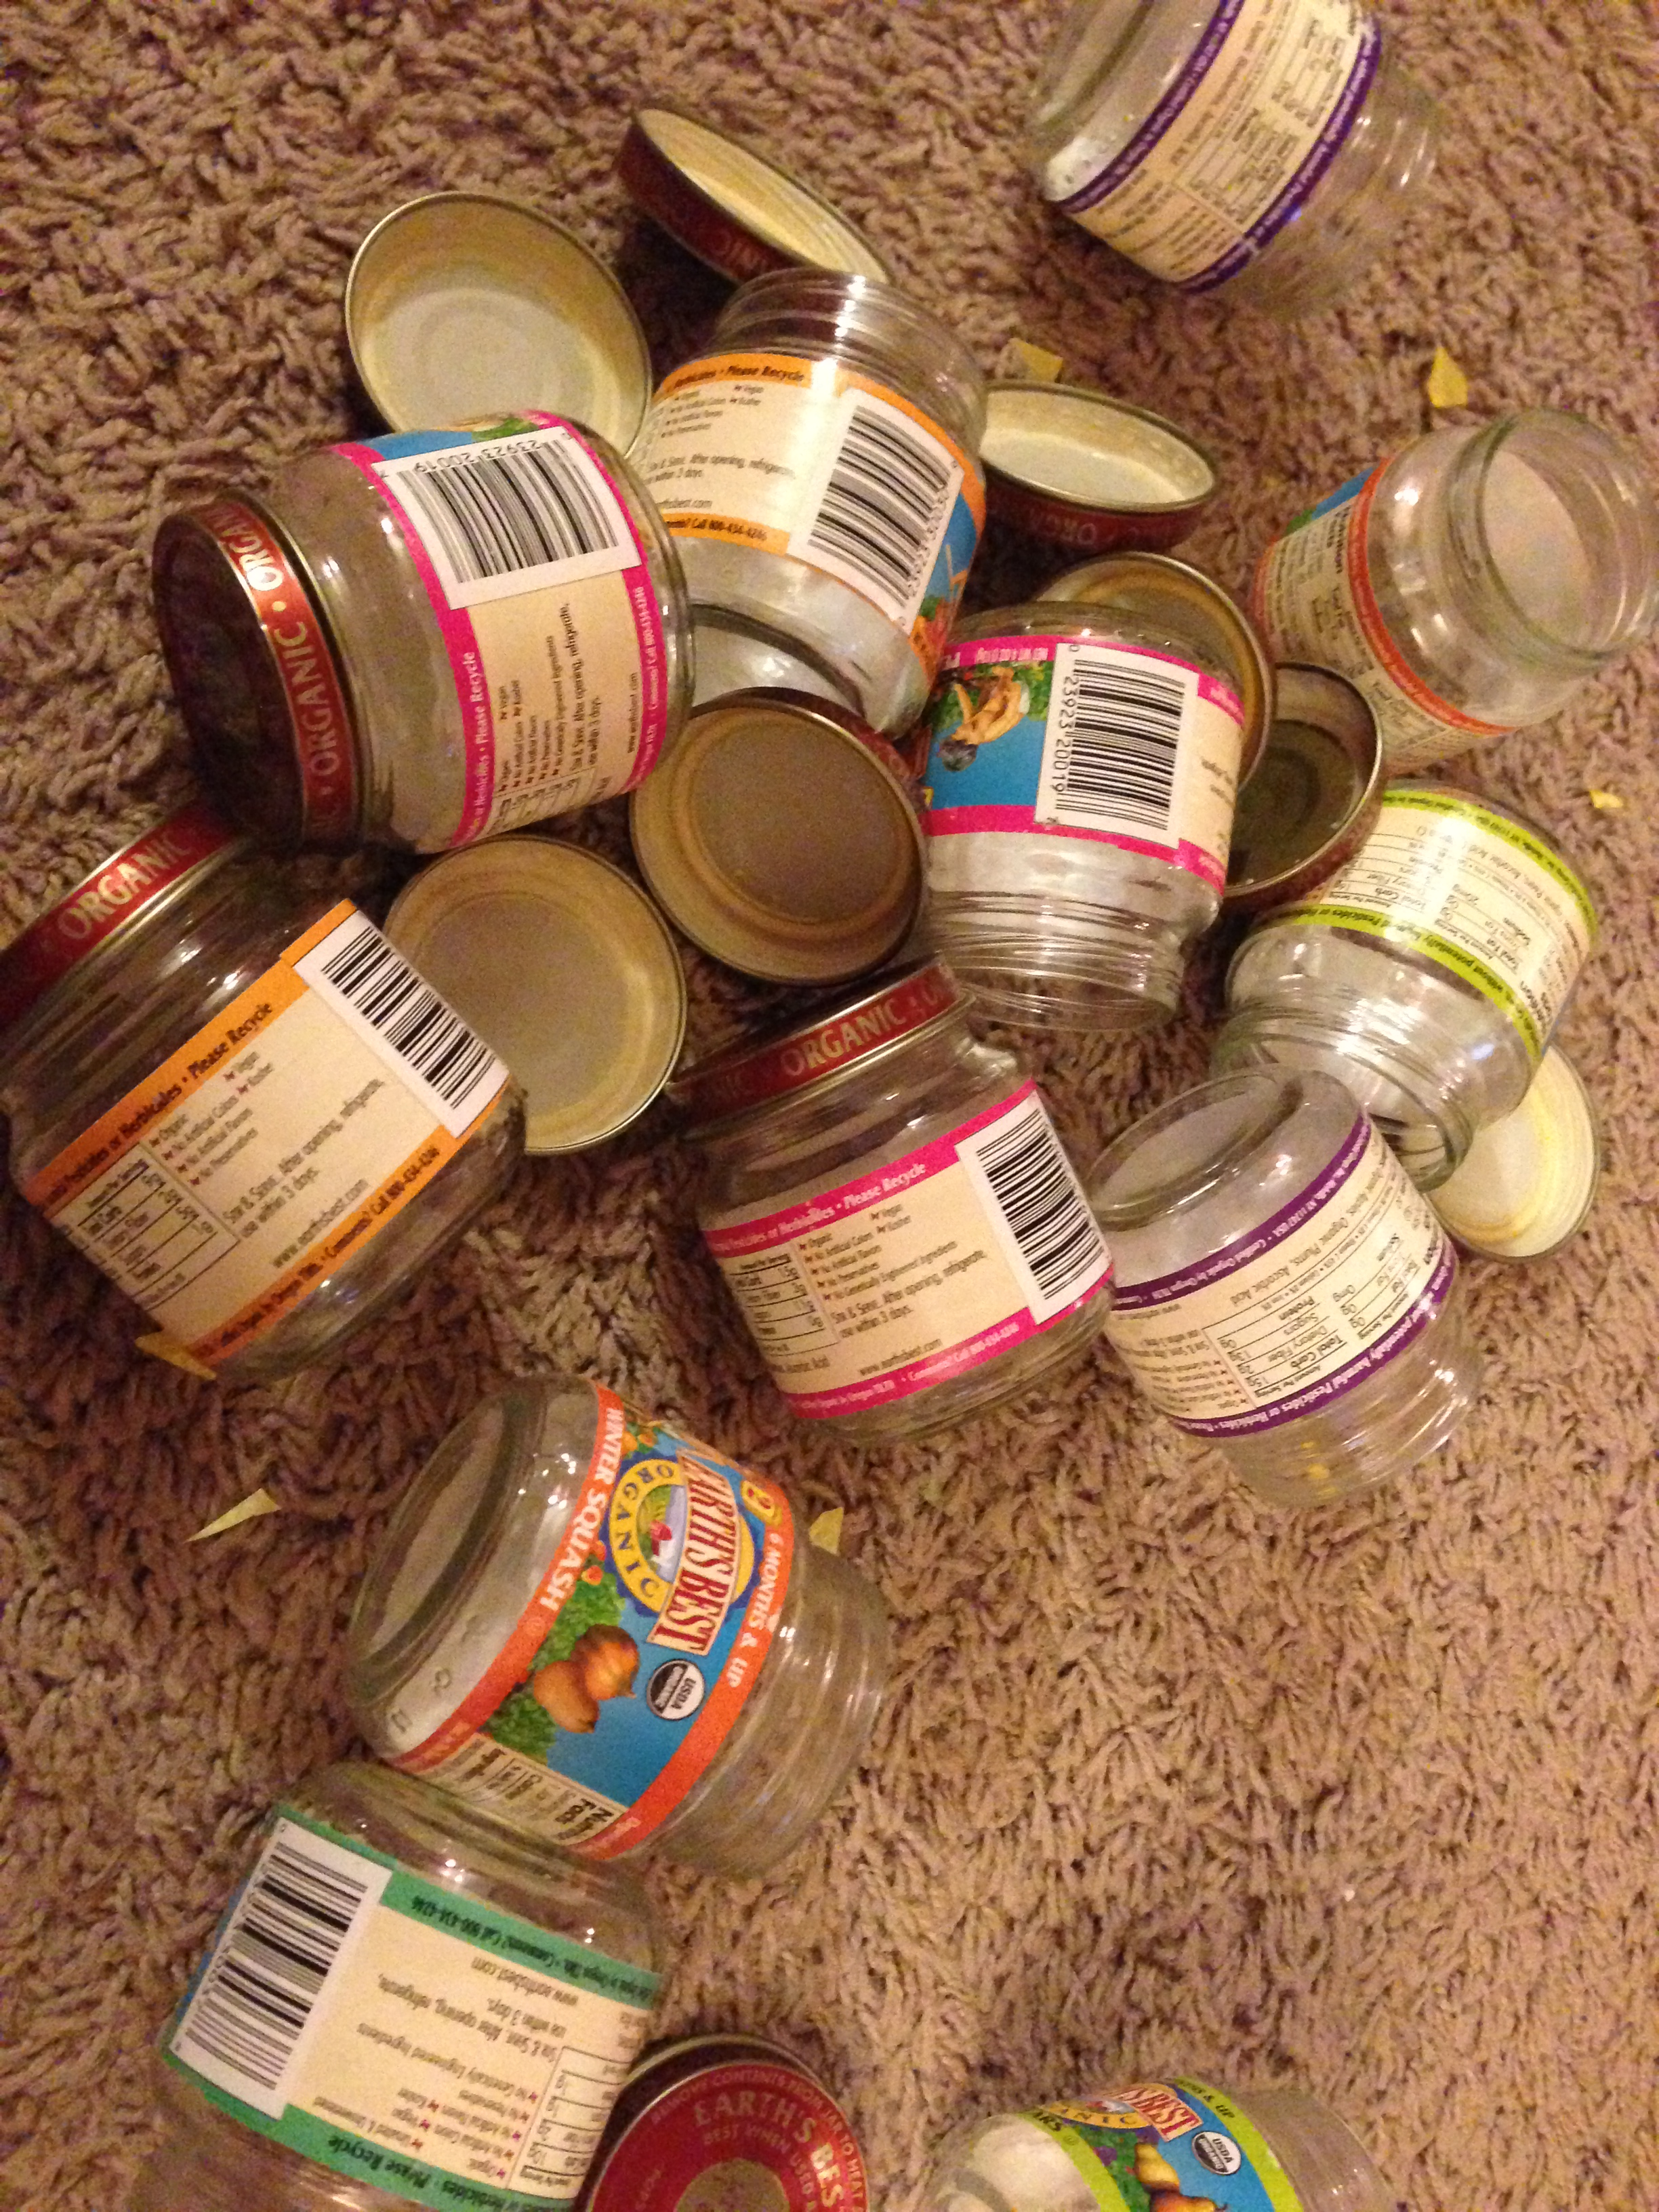 diy baby food jar soy candle favors what 39 s on my mind grapes what 39 s on my mind grapes. Black Bedroom Furniture Sets. Home Design Ideas